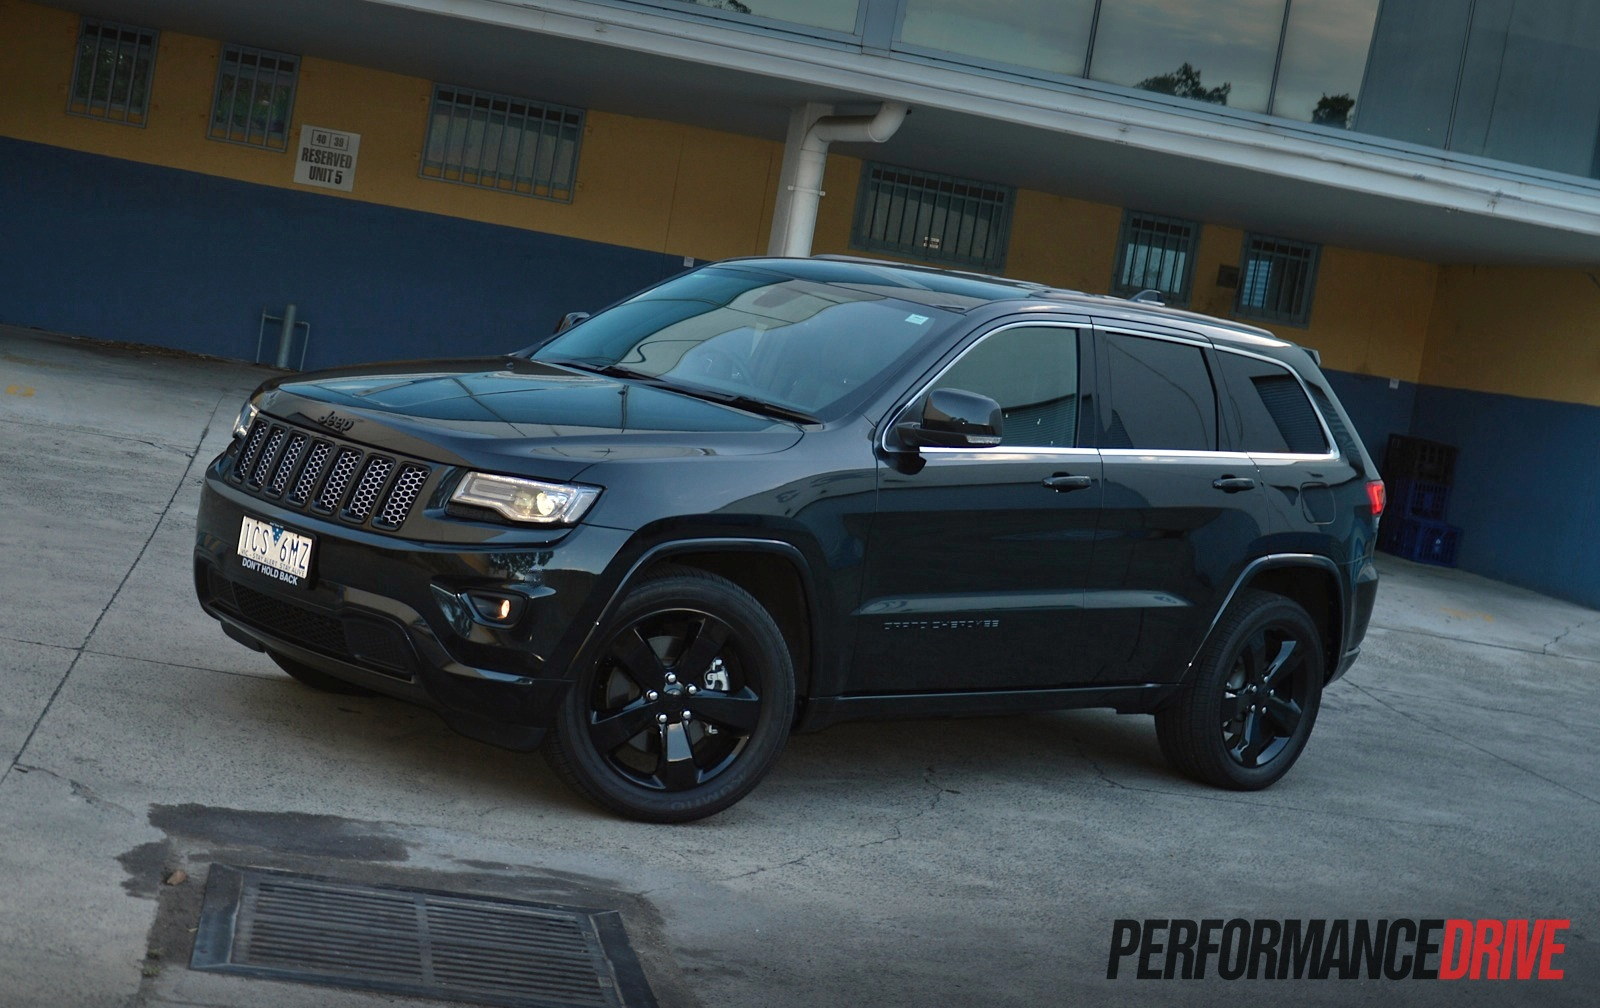 three side grand cherokee front summit drive jeep srt overland limited and first drivers quarters